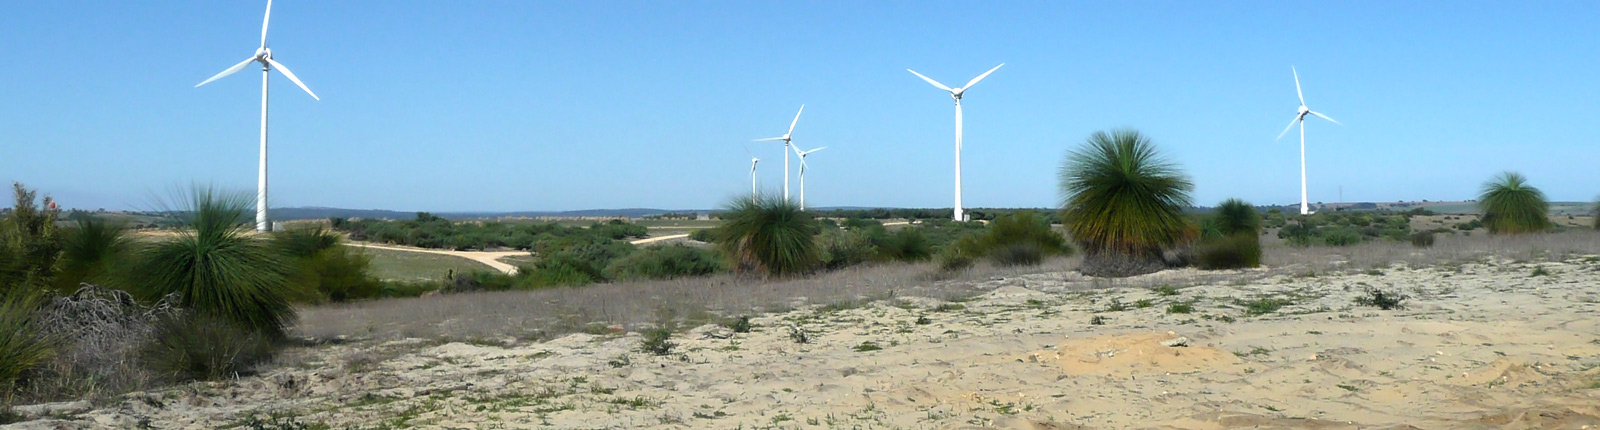 Contraflow creating power to lancelin wind farm